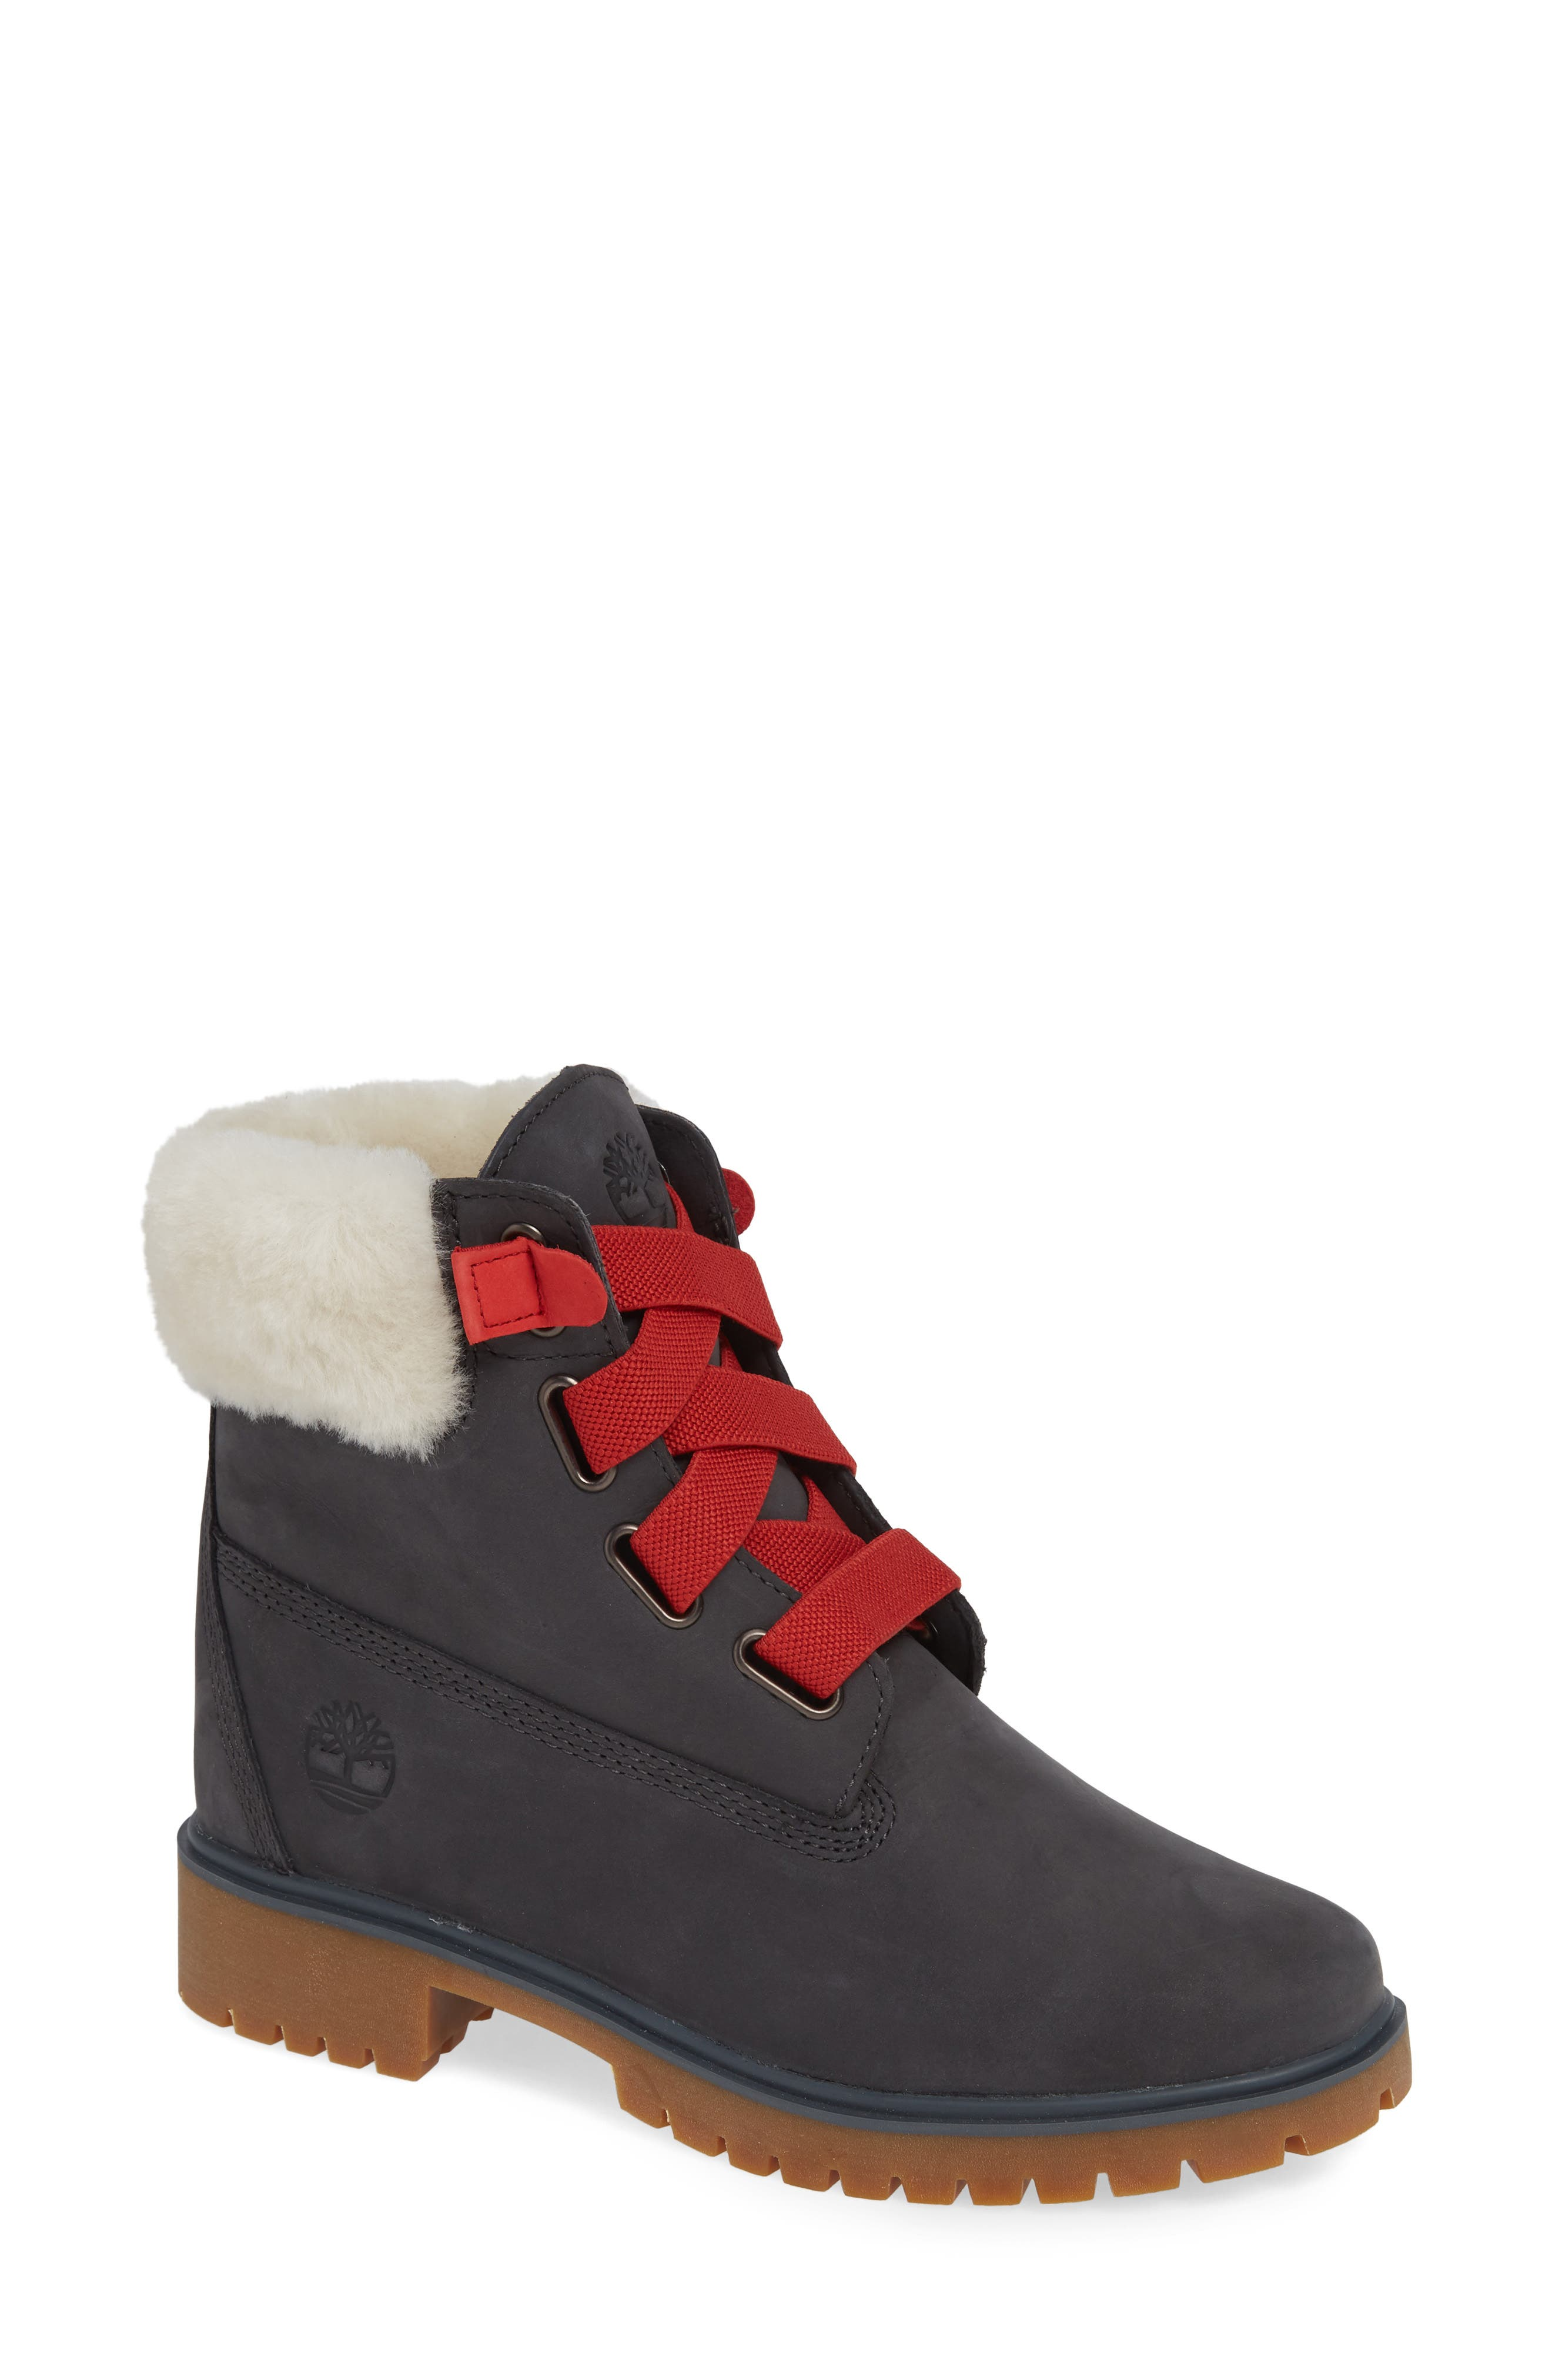 Convenience Waterproof Boot with Genuine Shearling Trim, Main, color, 065